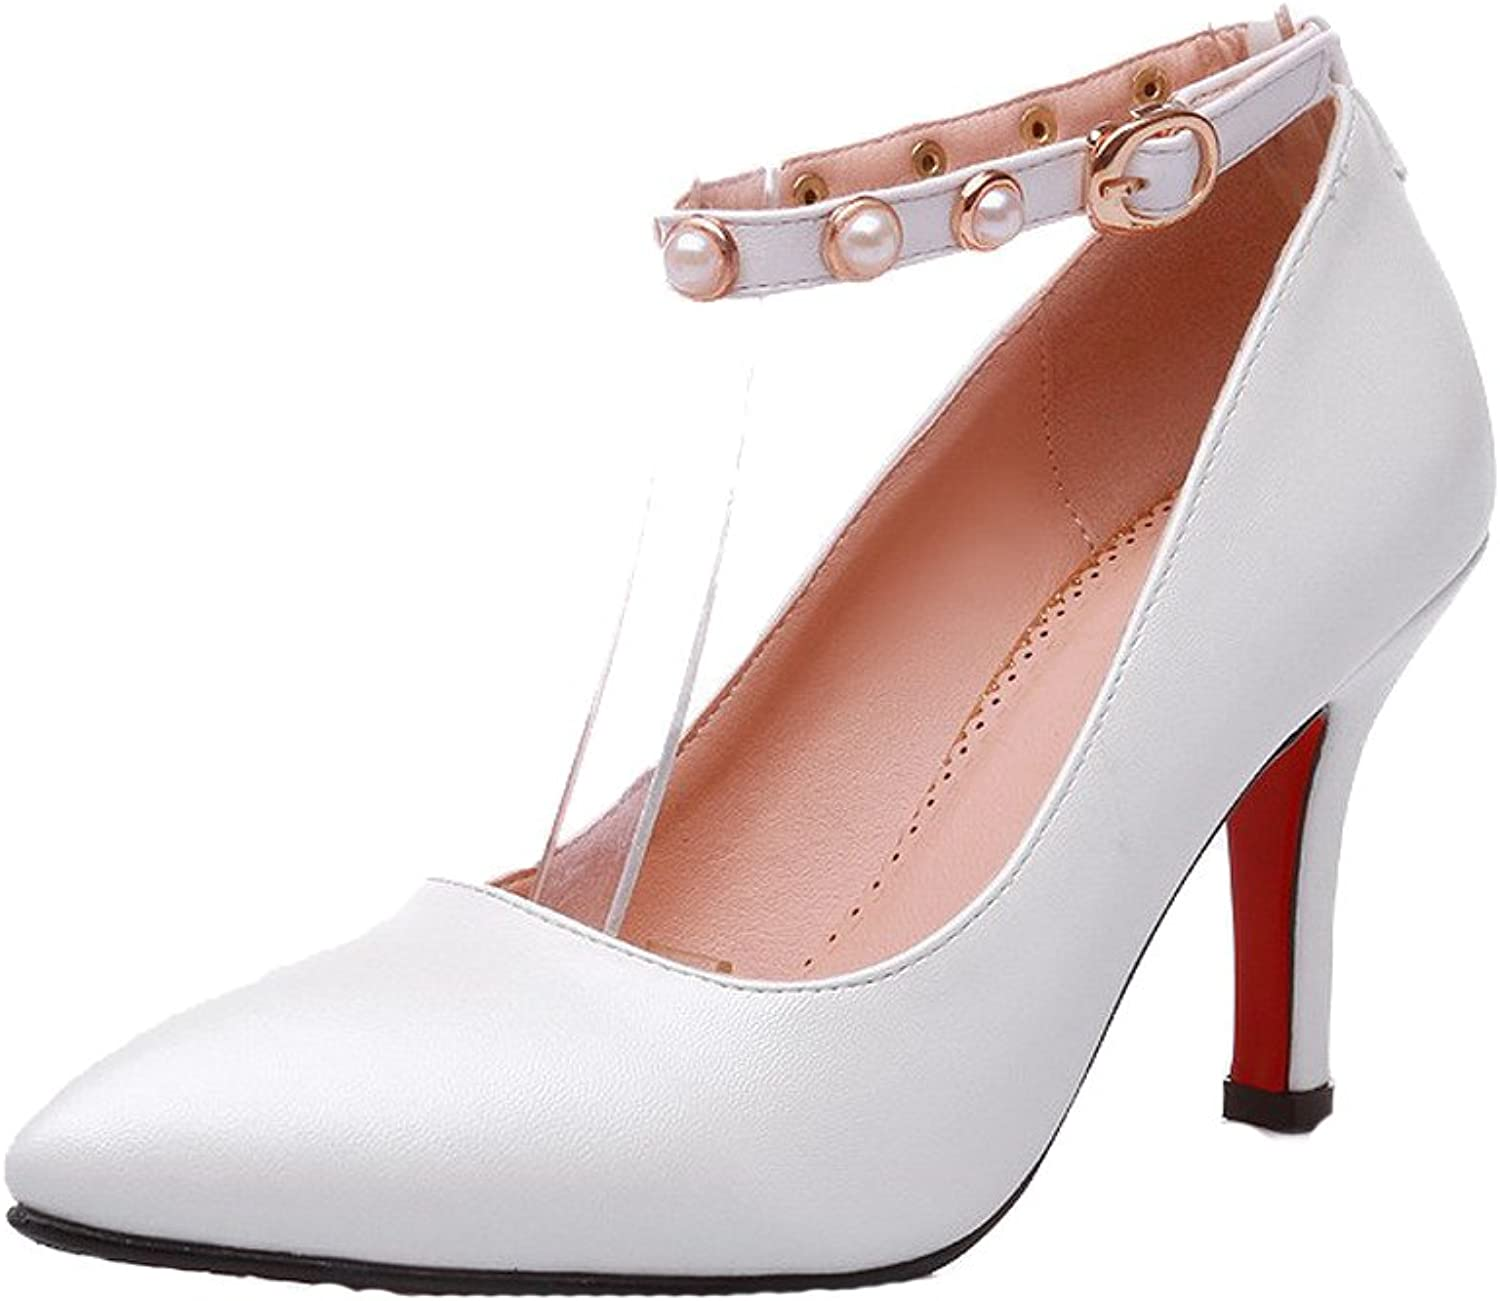 AllhqFashion Women's High-Heels Soft Material Solid Buckle Pointed Closed Toe Pumps-shoes